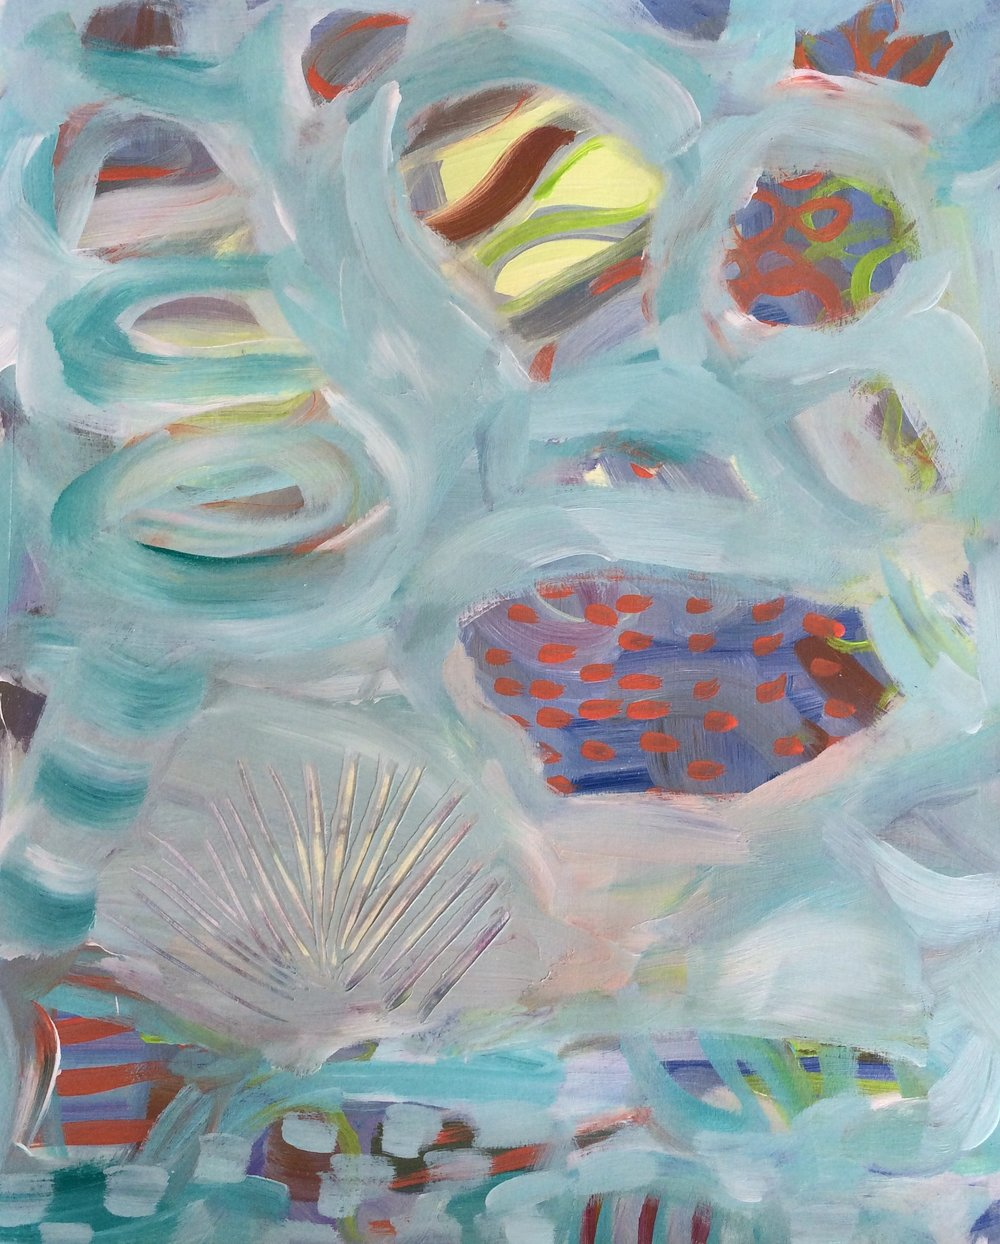 157 Gasping for Air - Acrylic Abstract - Lisa Cohen